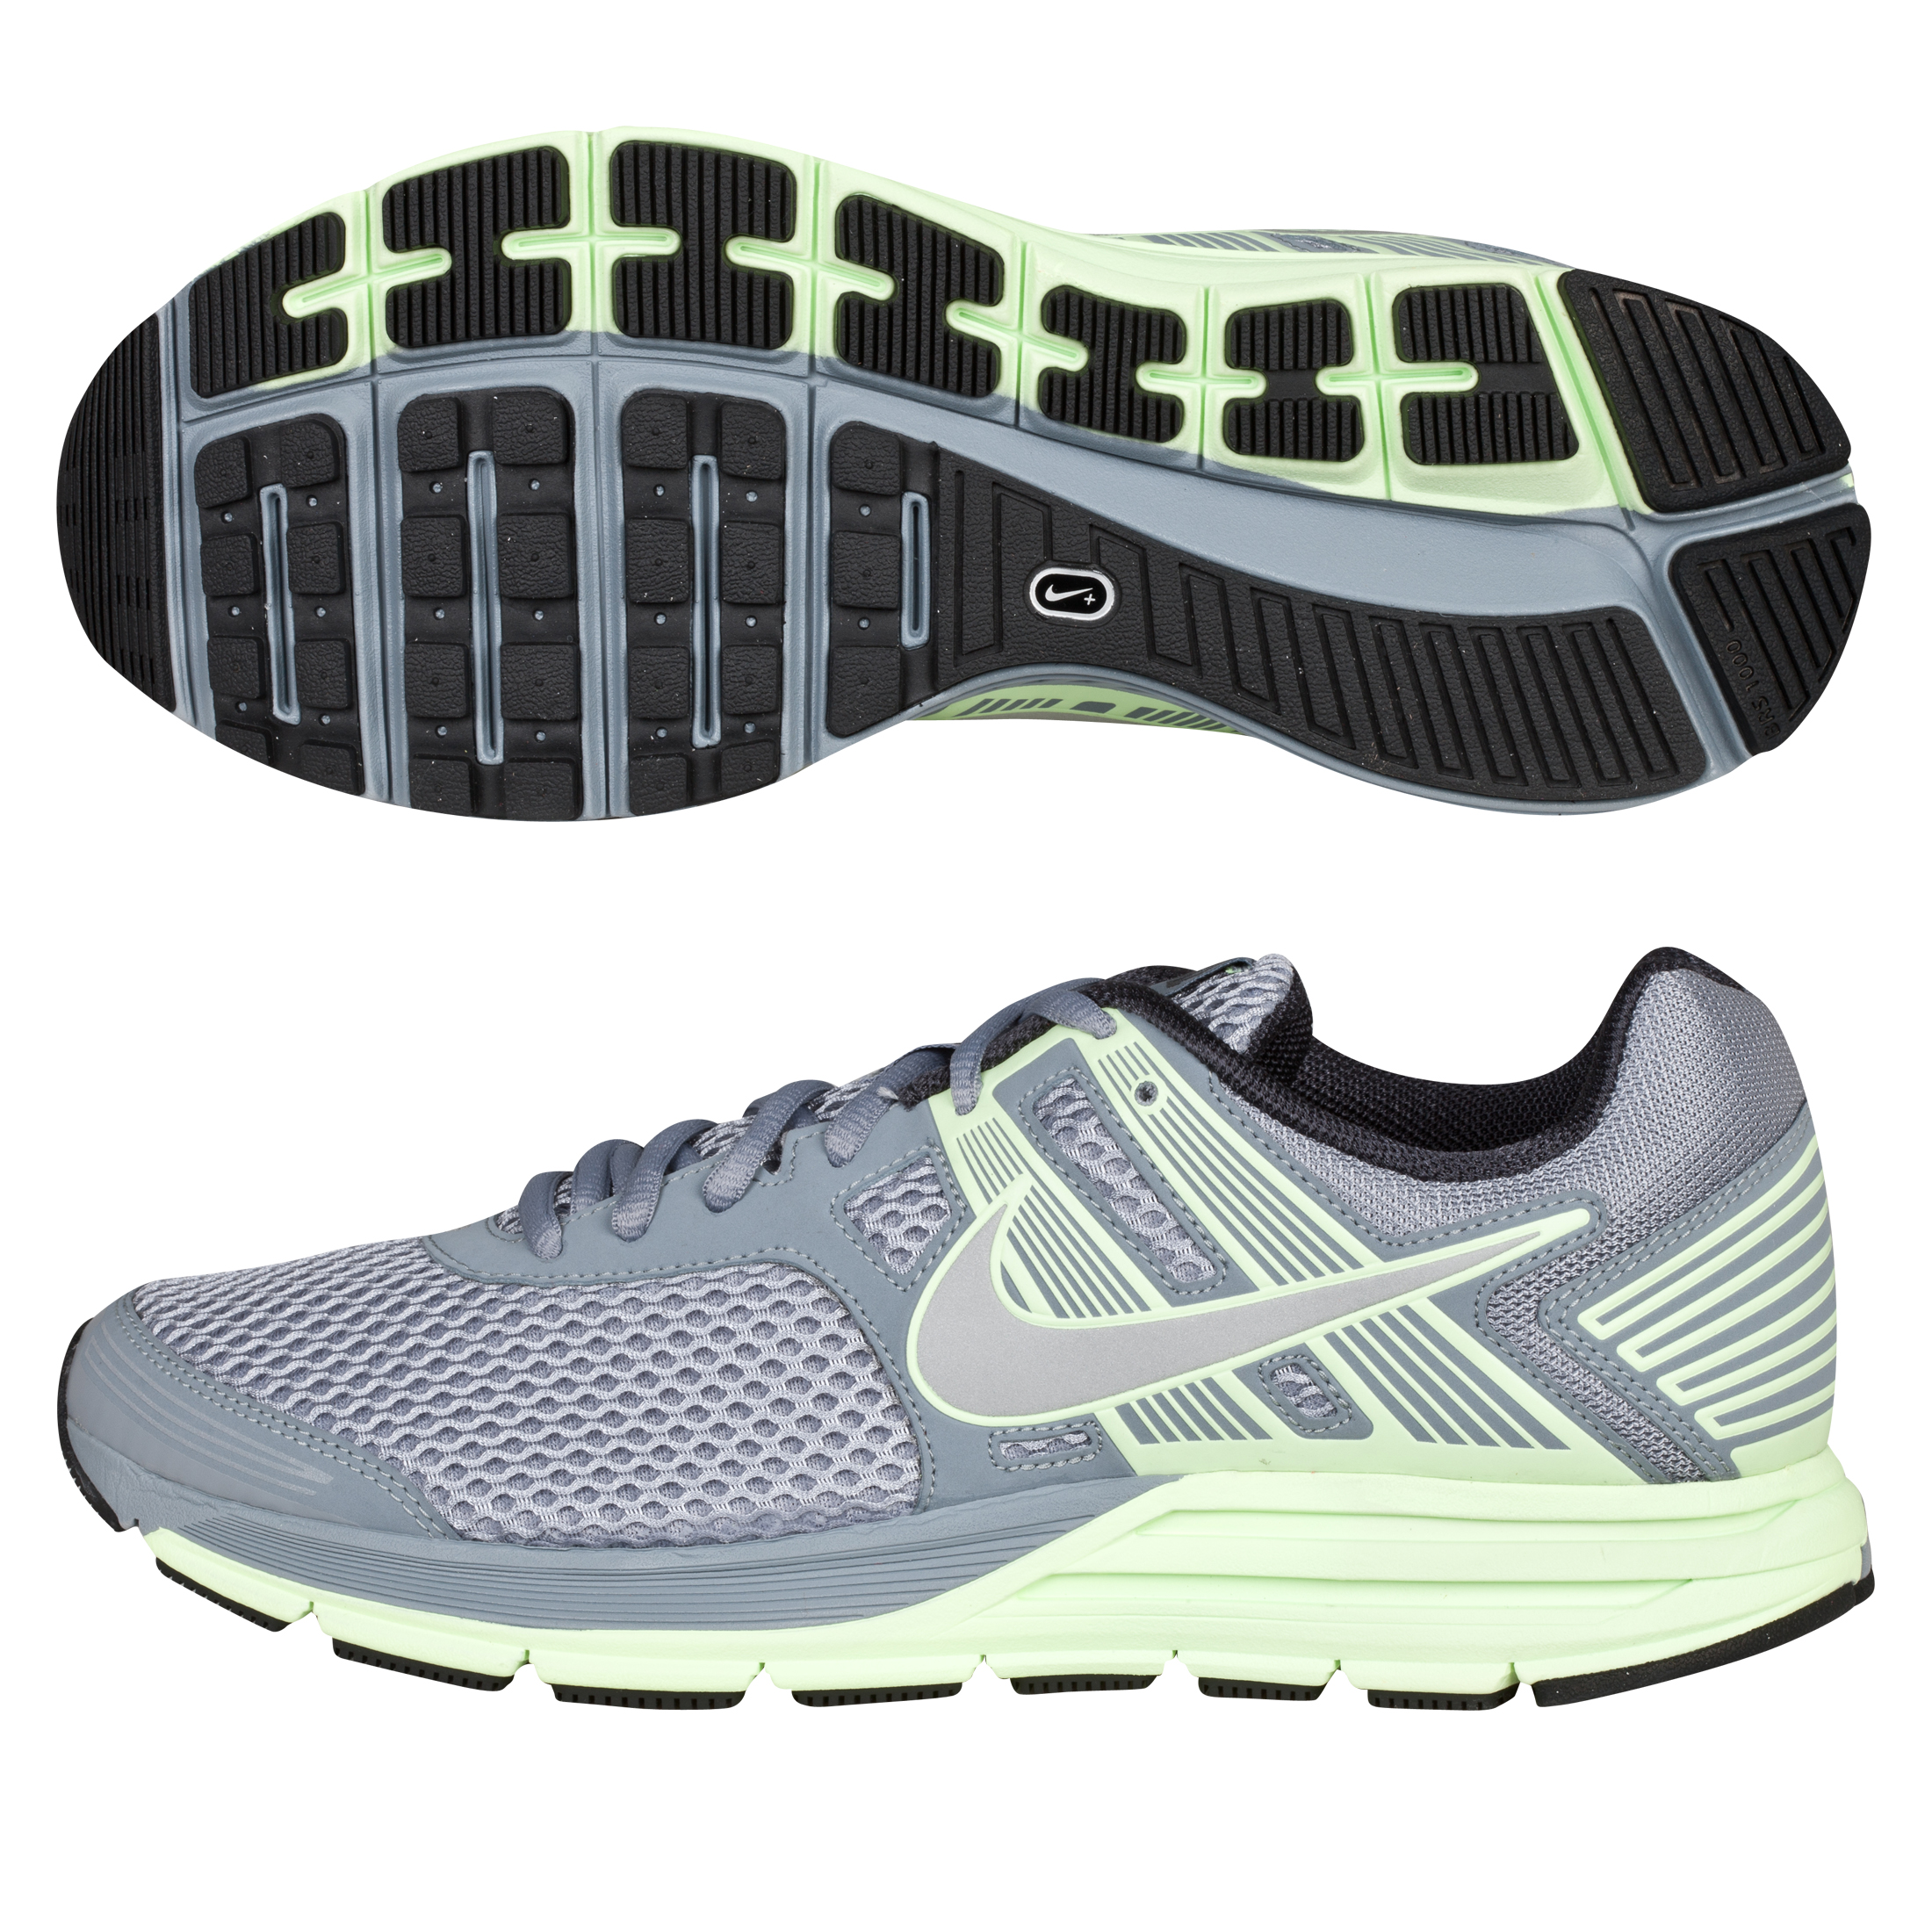 Nike Zoom Structure +16 Stability Trainer - Stealth/Reflective Silver - Womens